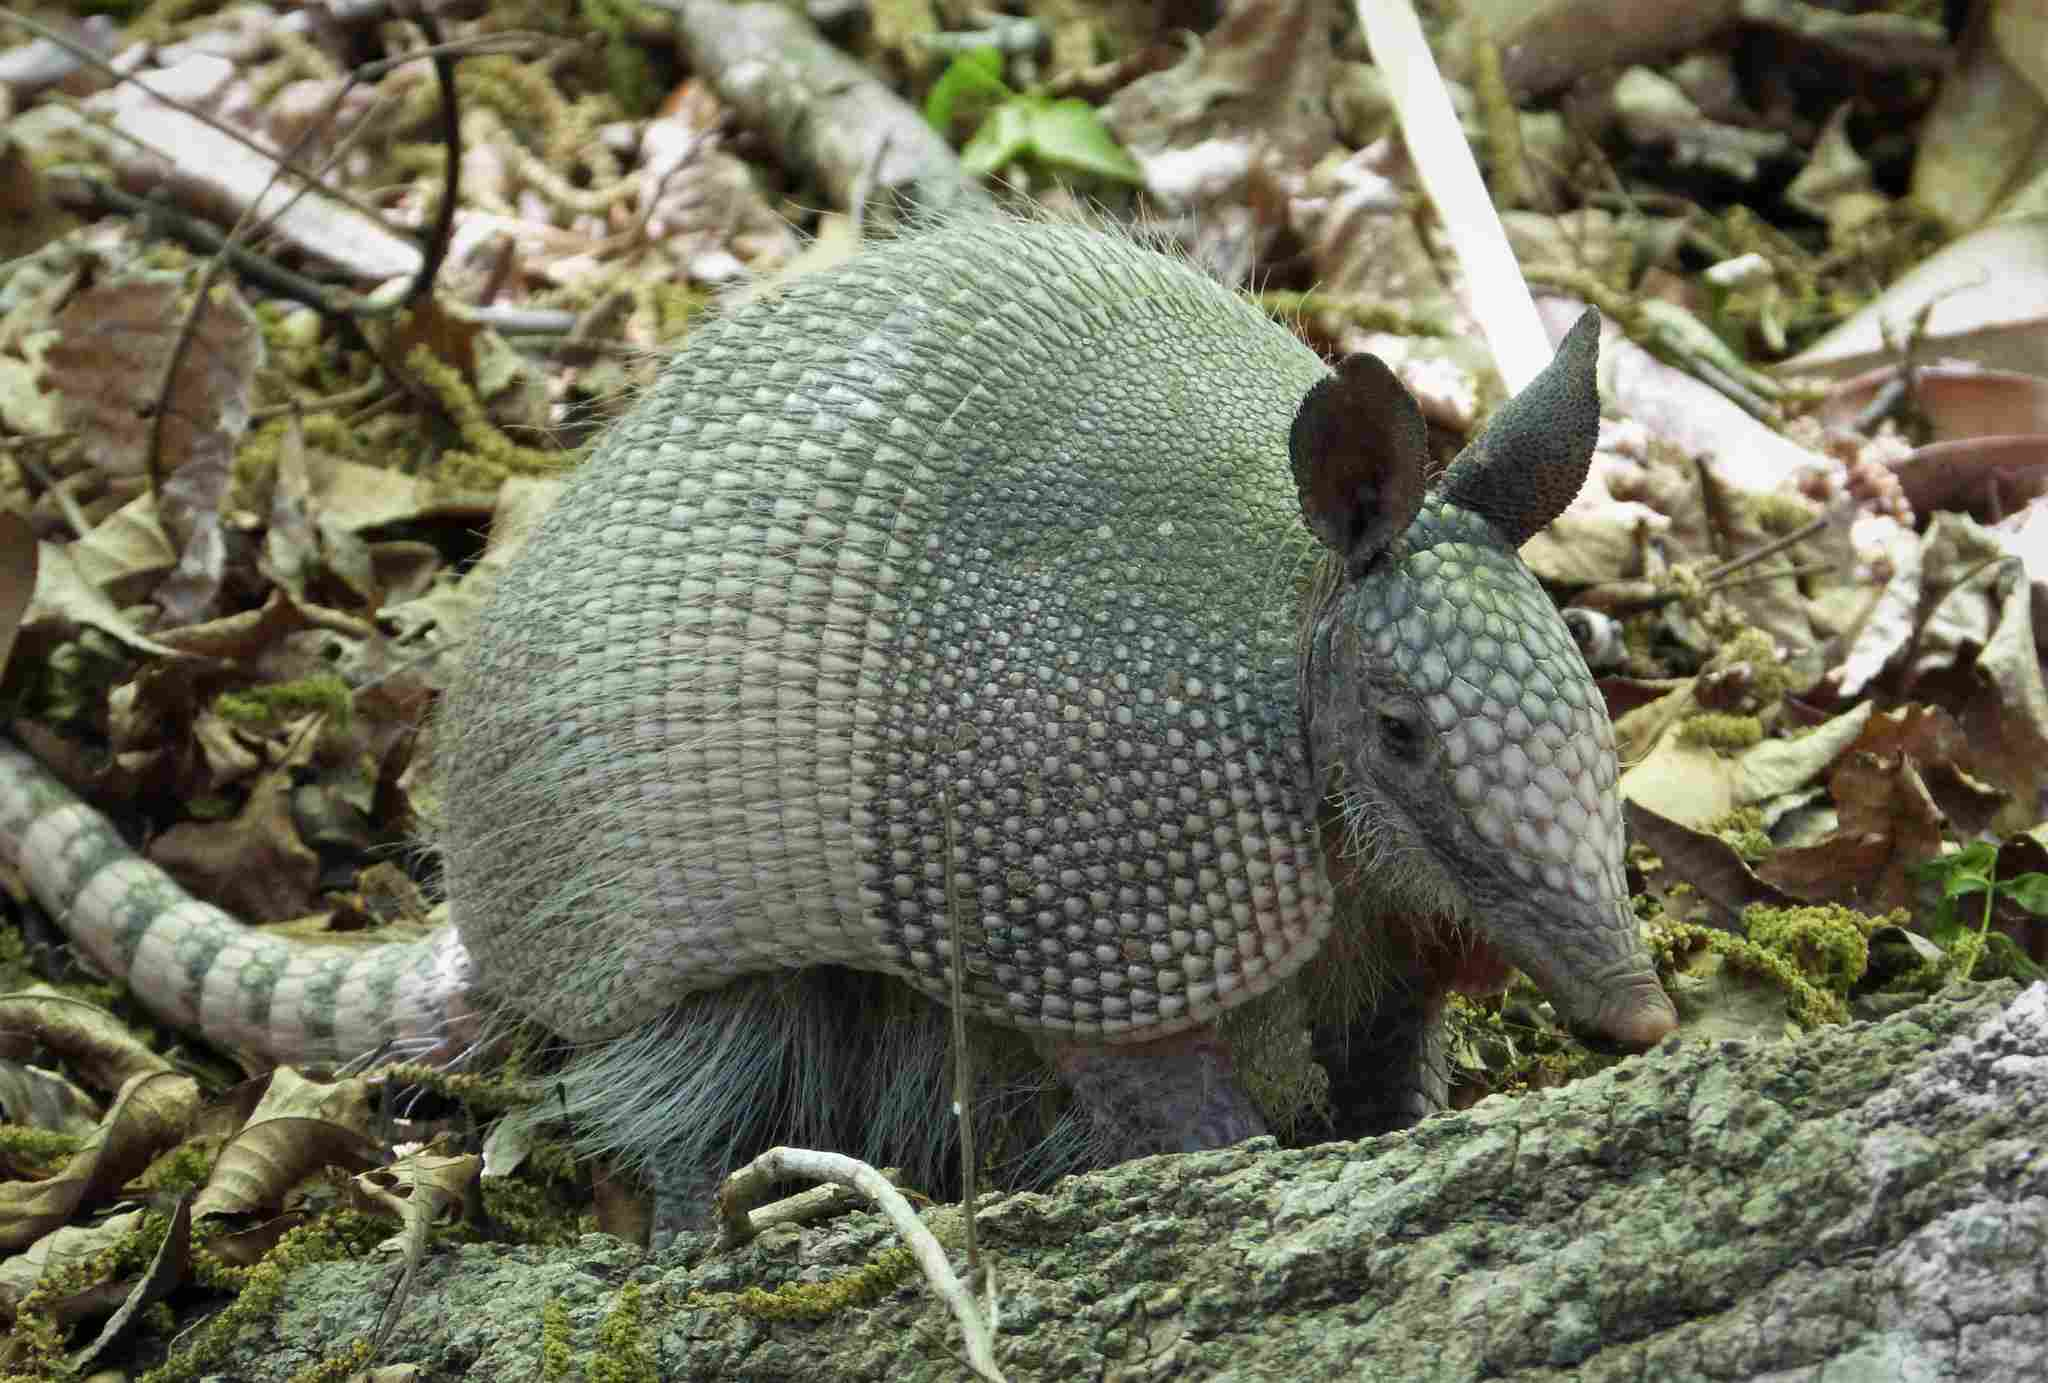 Armadillo in a wooded environment.